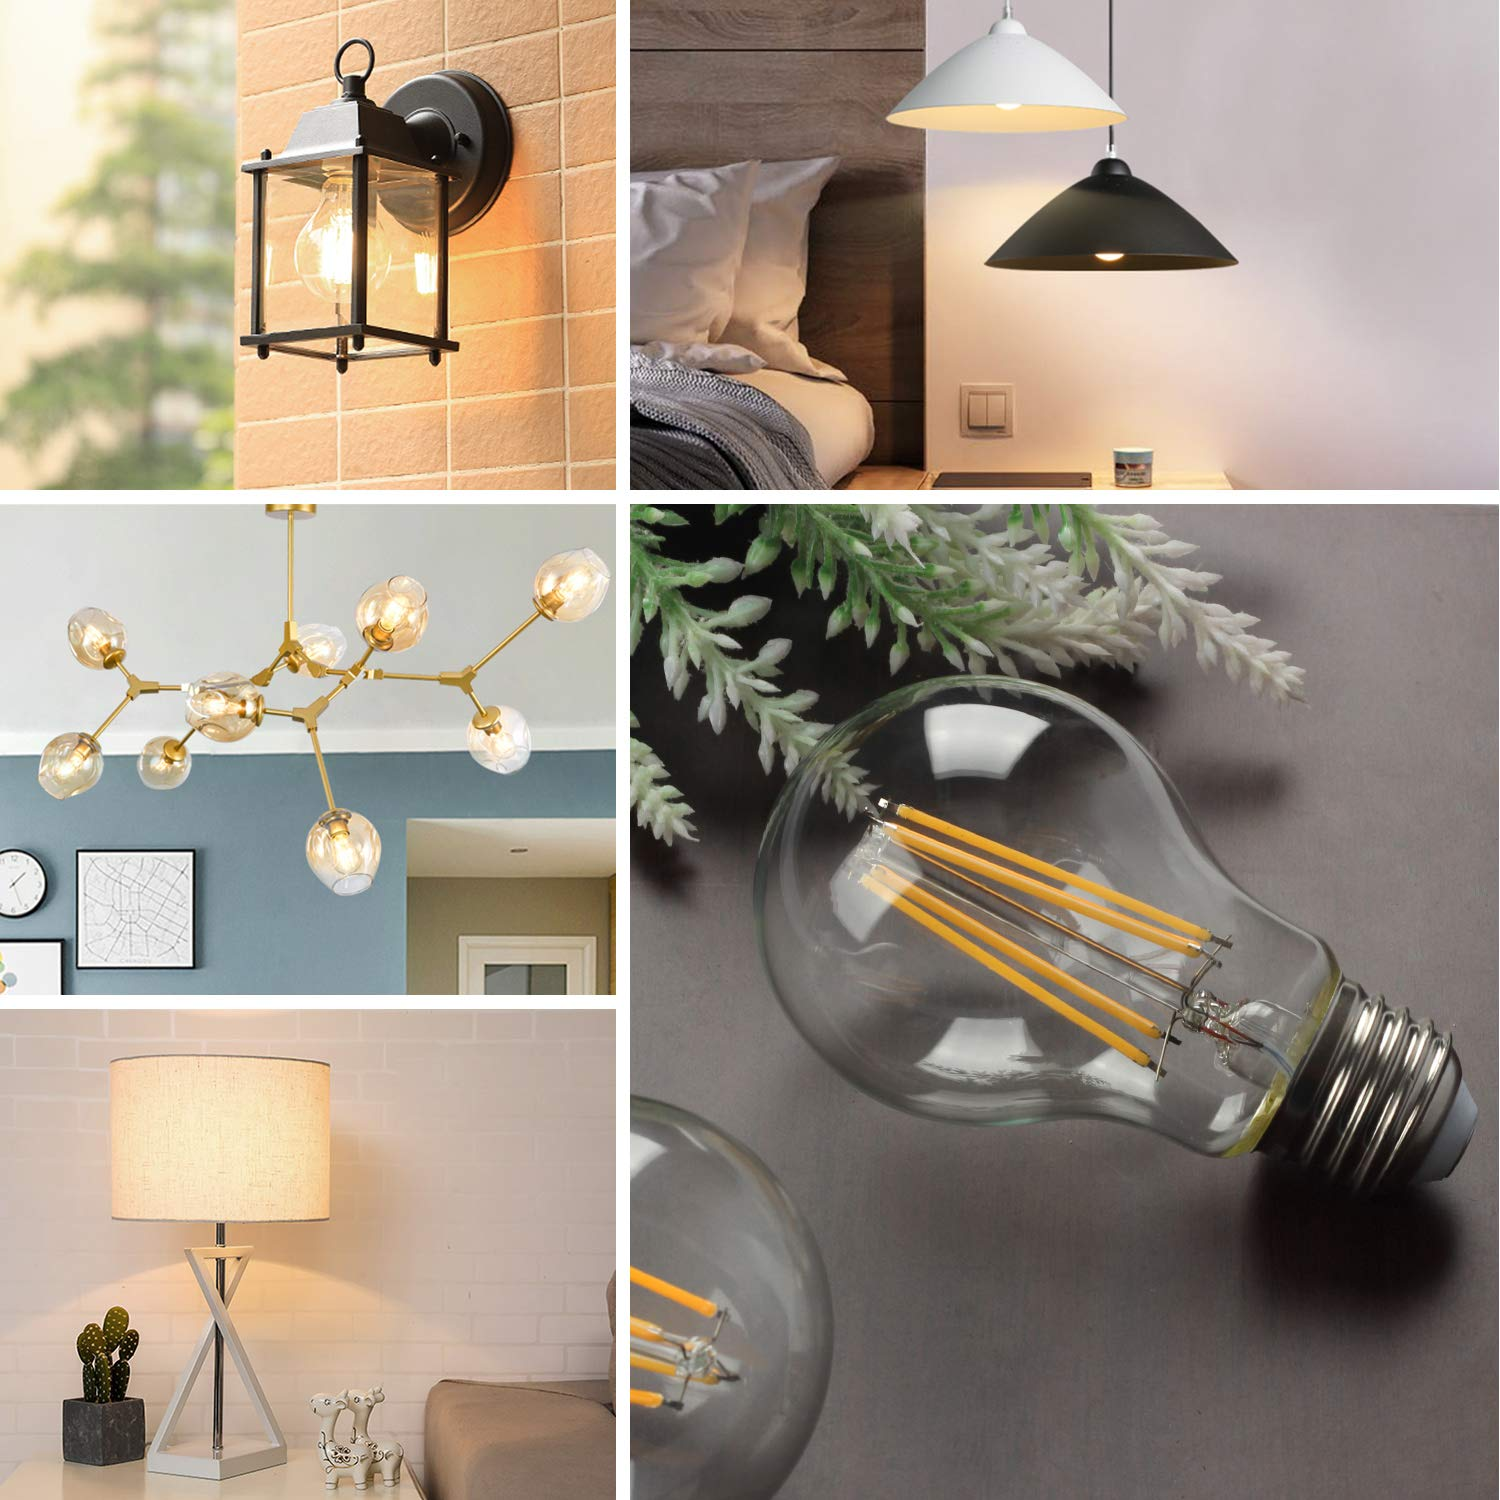 Vintage LED Edison Bulb Dimmable 6W A19 LED Light Bulbs 2700K Soft White 600LM Led Filament Bulb 60W Incandescent Equivalent E26 Medium Base Decorative Clear Glass for Home, Restaurant, Cafe, 6 Pack by Boncoo (Image #8)